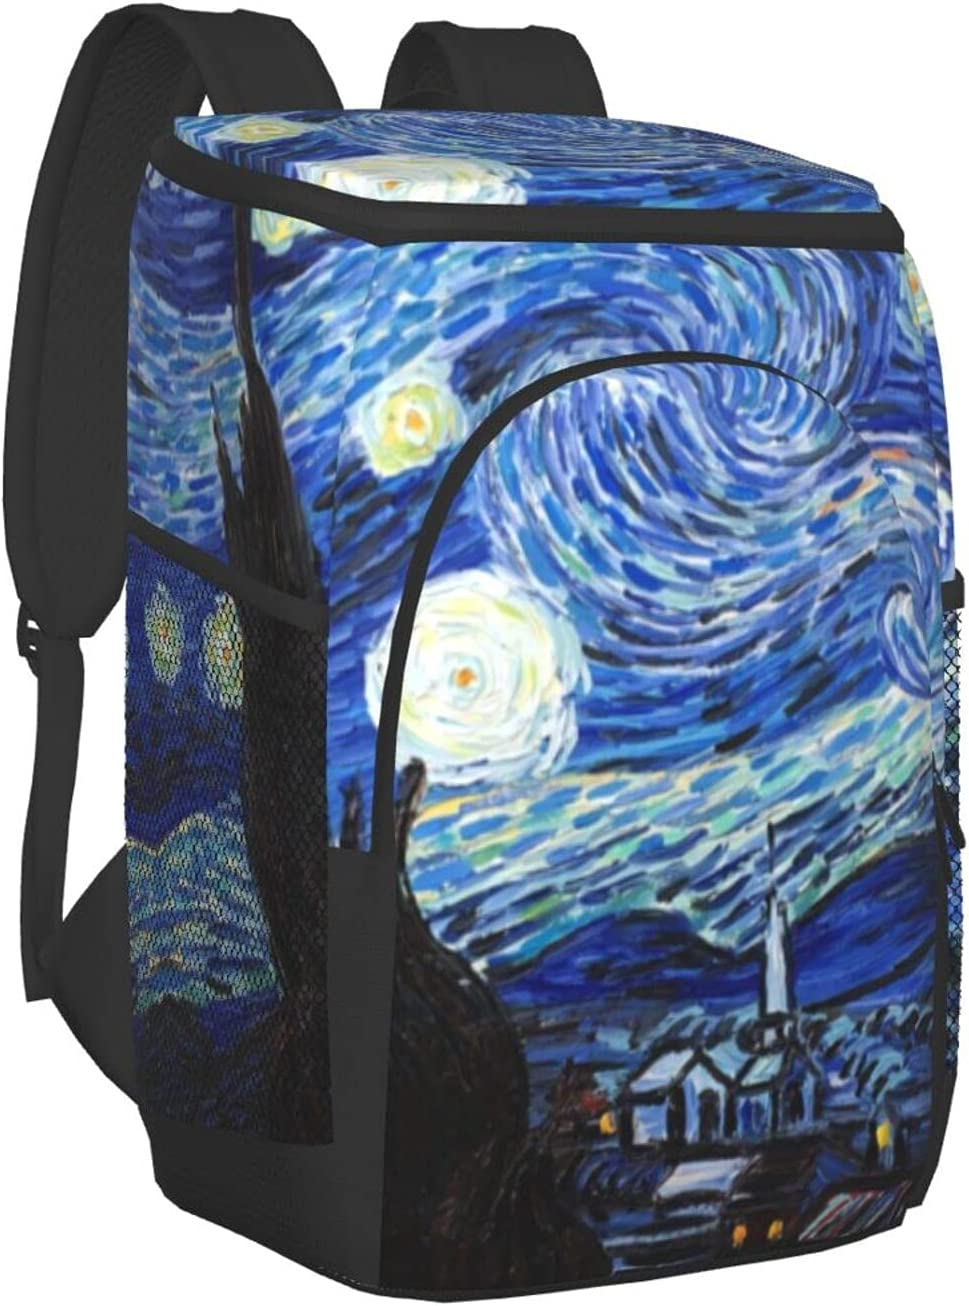 Milwaukee Direct sale of manufacturer Mall Zodiac Original Insulated Cooler Leakproof Backpack Soft